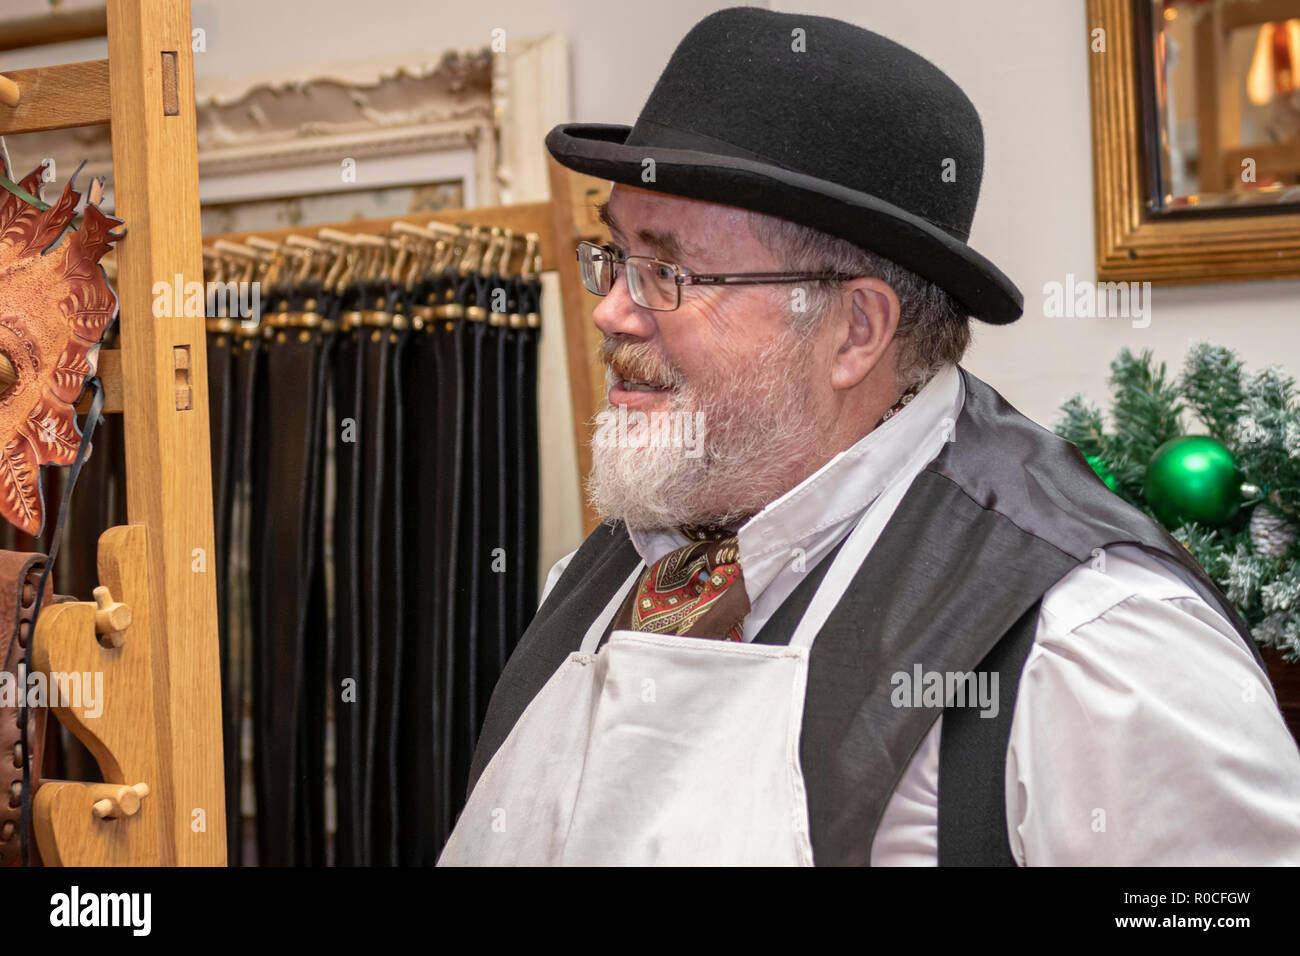 UK, Market Bosworth, Victorian Christmas Fair - December 2015: market trader selling leather goods dressed  as a victorian shopkeeper - Stock Image